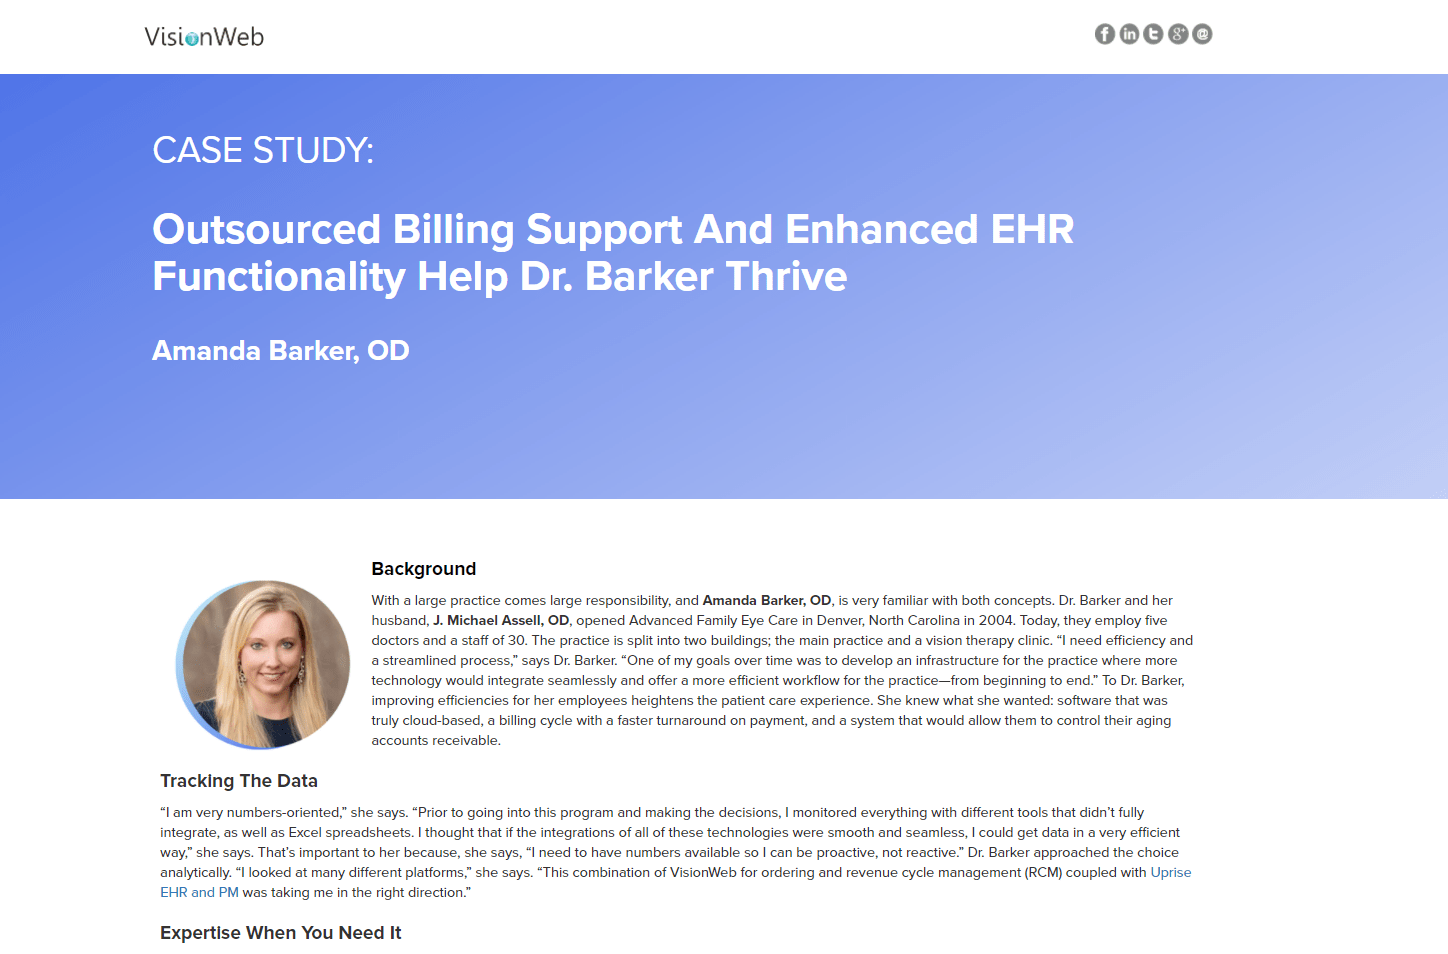 Outsourced Billing Support And Enhanced EHR Functionality Help Dr. Barker Thrive